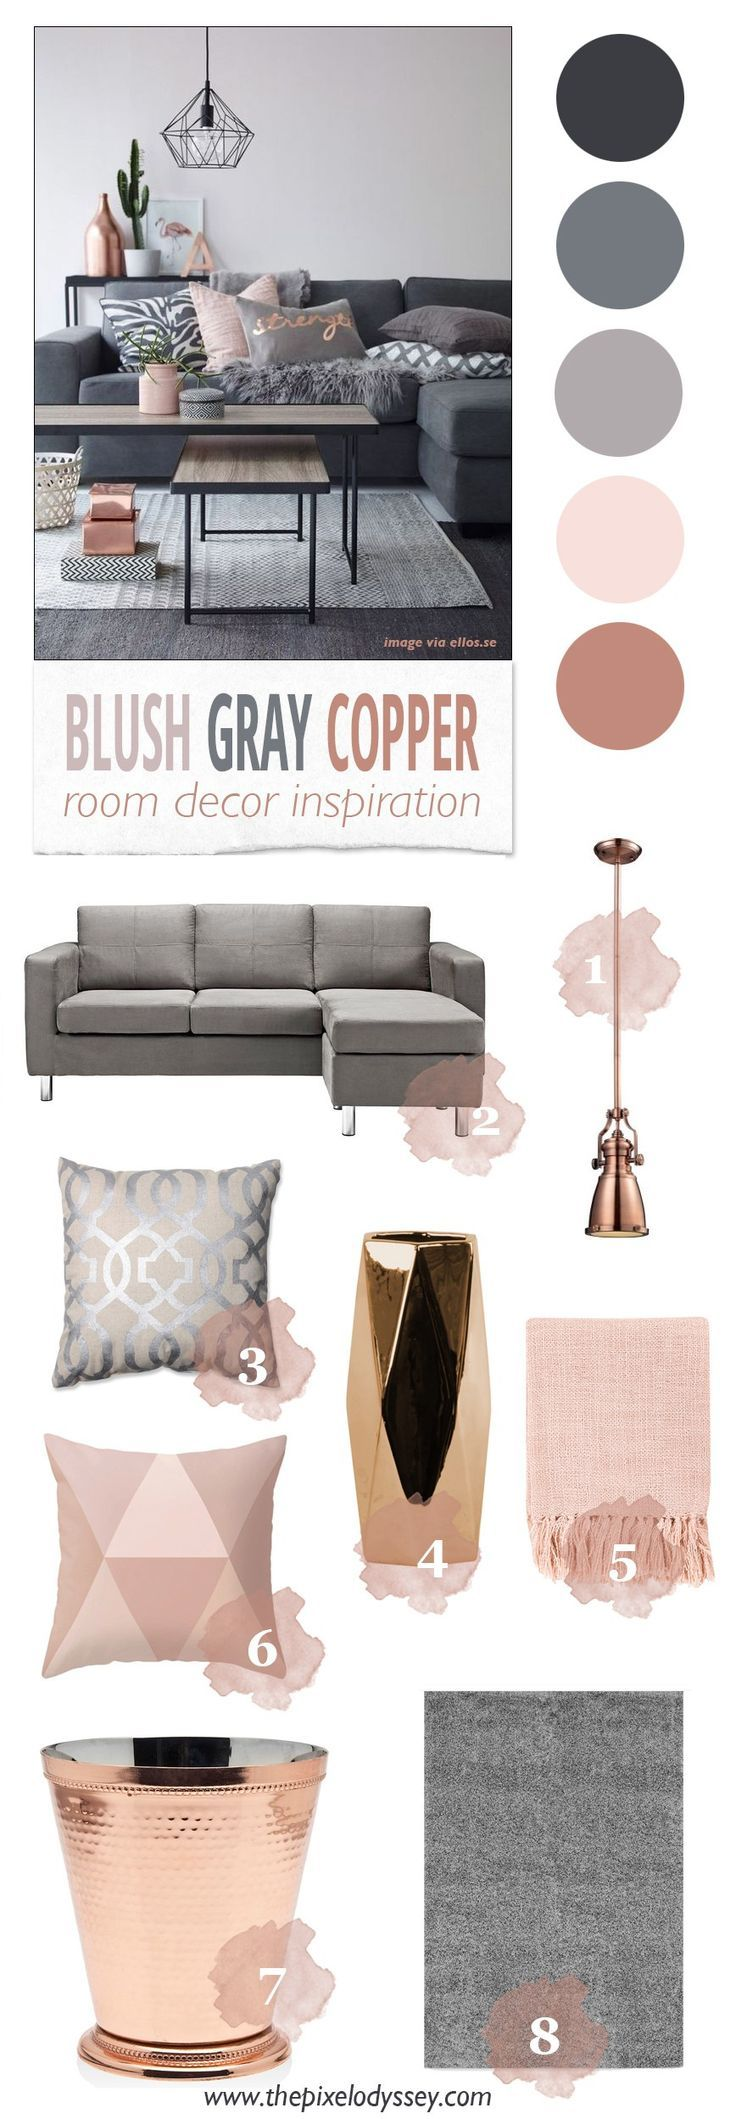 Best Blush Gray Copper Room Decor Inspiration Copper Gray 400 x 300